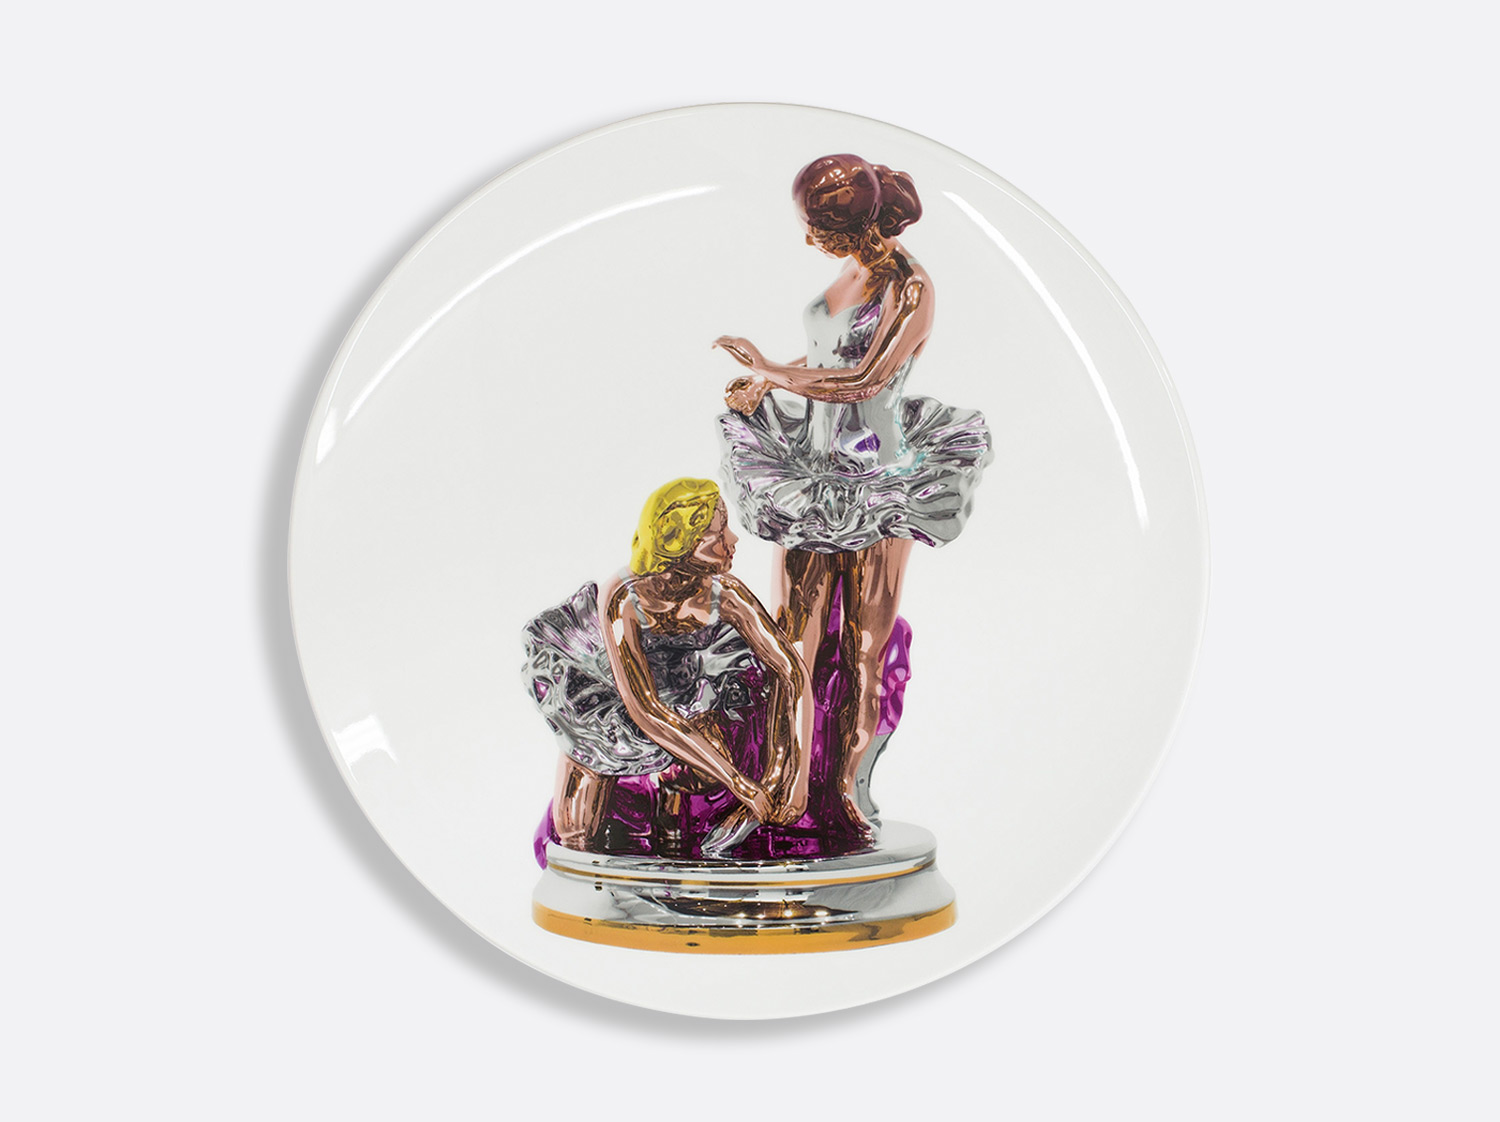 Coupe 31 cm en porcelaine de la collection BALLERINAS by Jeff Koons Bernardaud